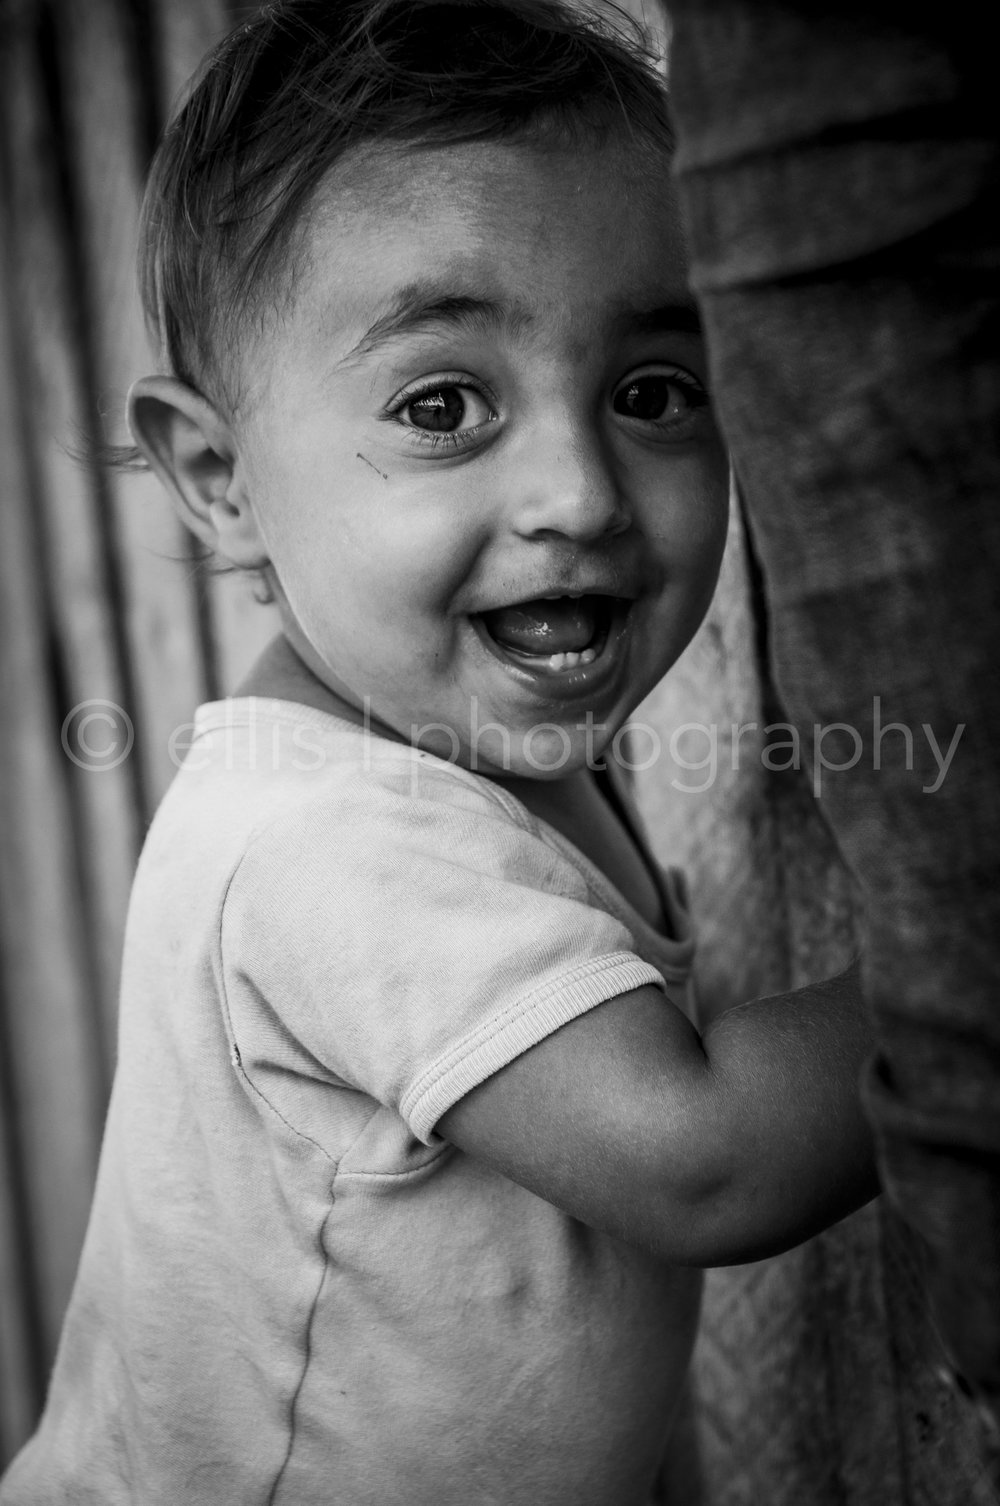 Gipsy baby boy holding on to the wooden fence. Looking happy in the camera. Big smile and big eyes. Black and white daily life Photography.